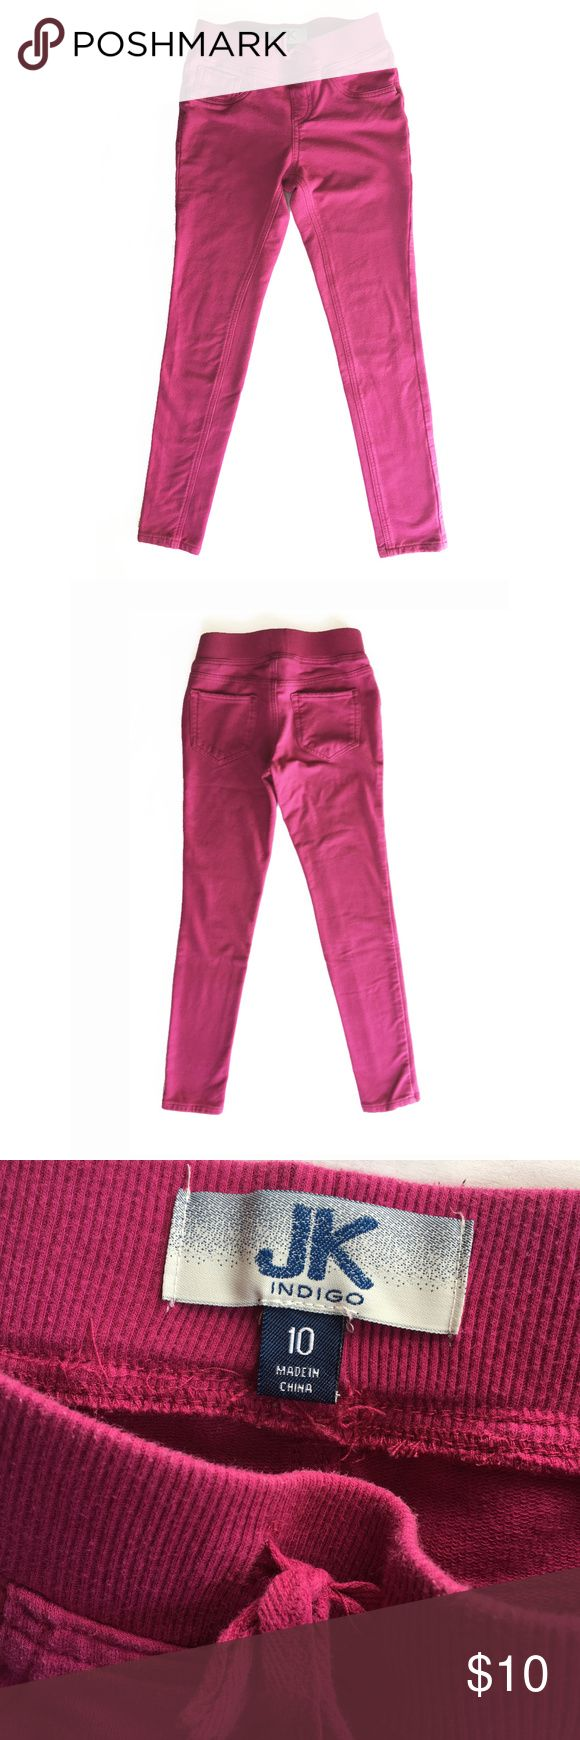 JK Indigo jeggings - soft legging - comfy These JK Indigo jeggins are so comfortable! Like wearing sweats, while still looking polished. The material is warm and soft - the pants don't feel like jeans, more like leggings, but heavier weight. These are used jeggings, with minor fading. Cute hot pink color! Faux pockets in the front, 2 patch pocket on the back side. JK Indigo Bottoms Jeans